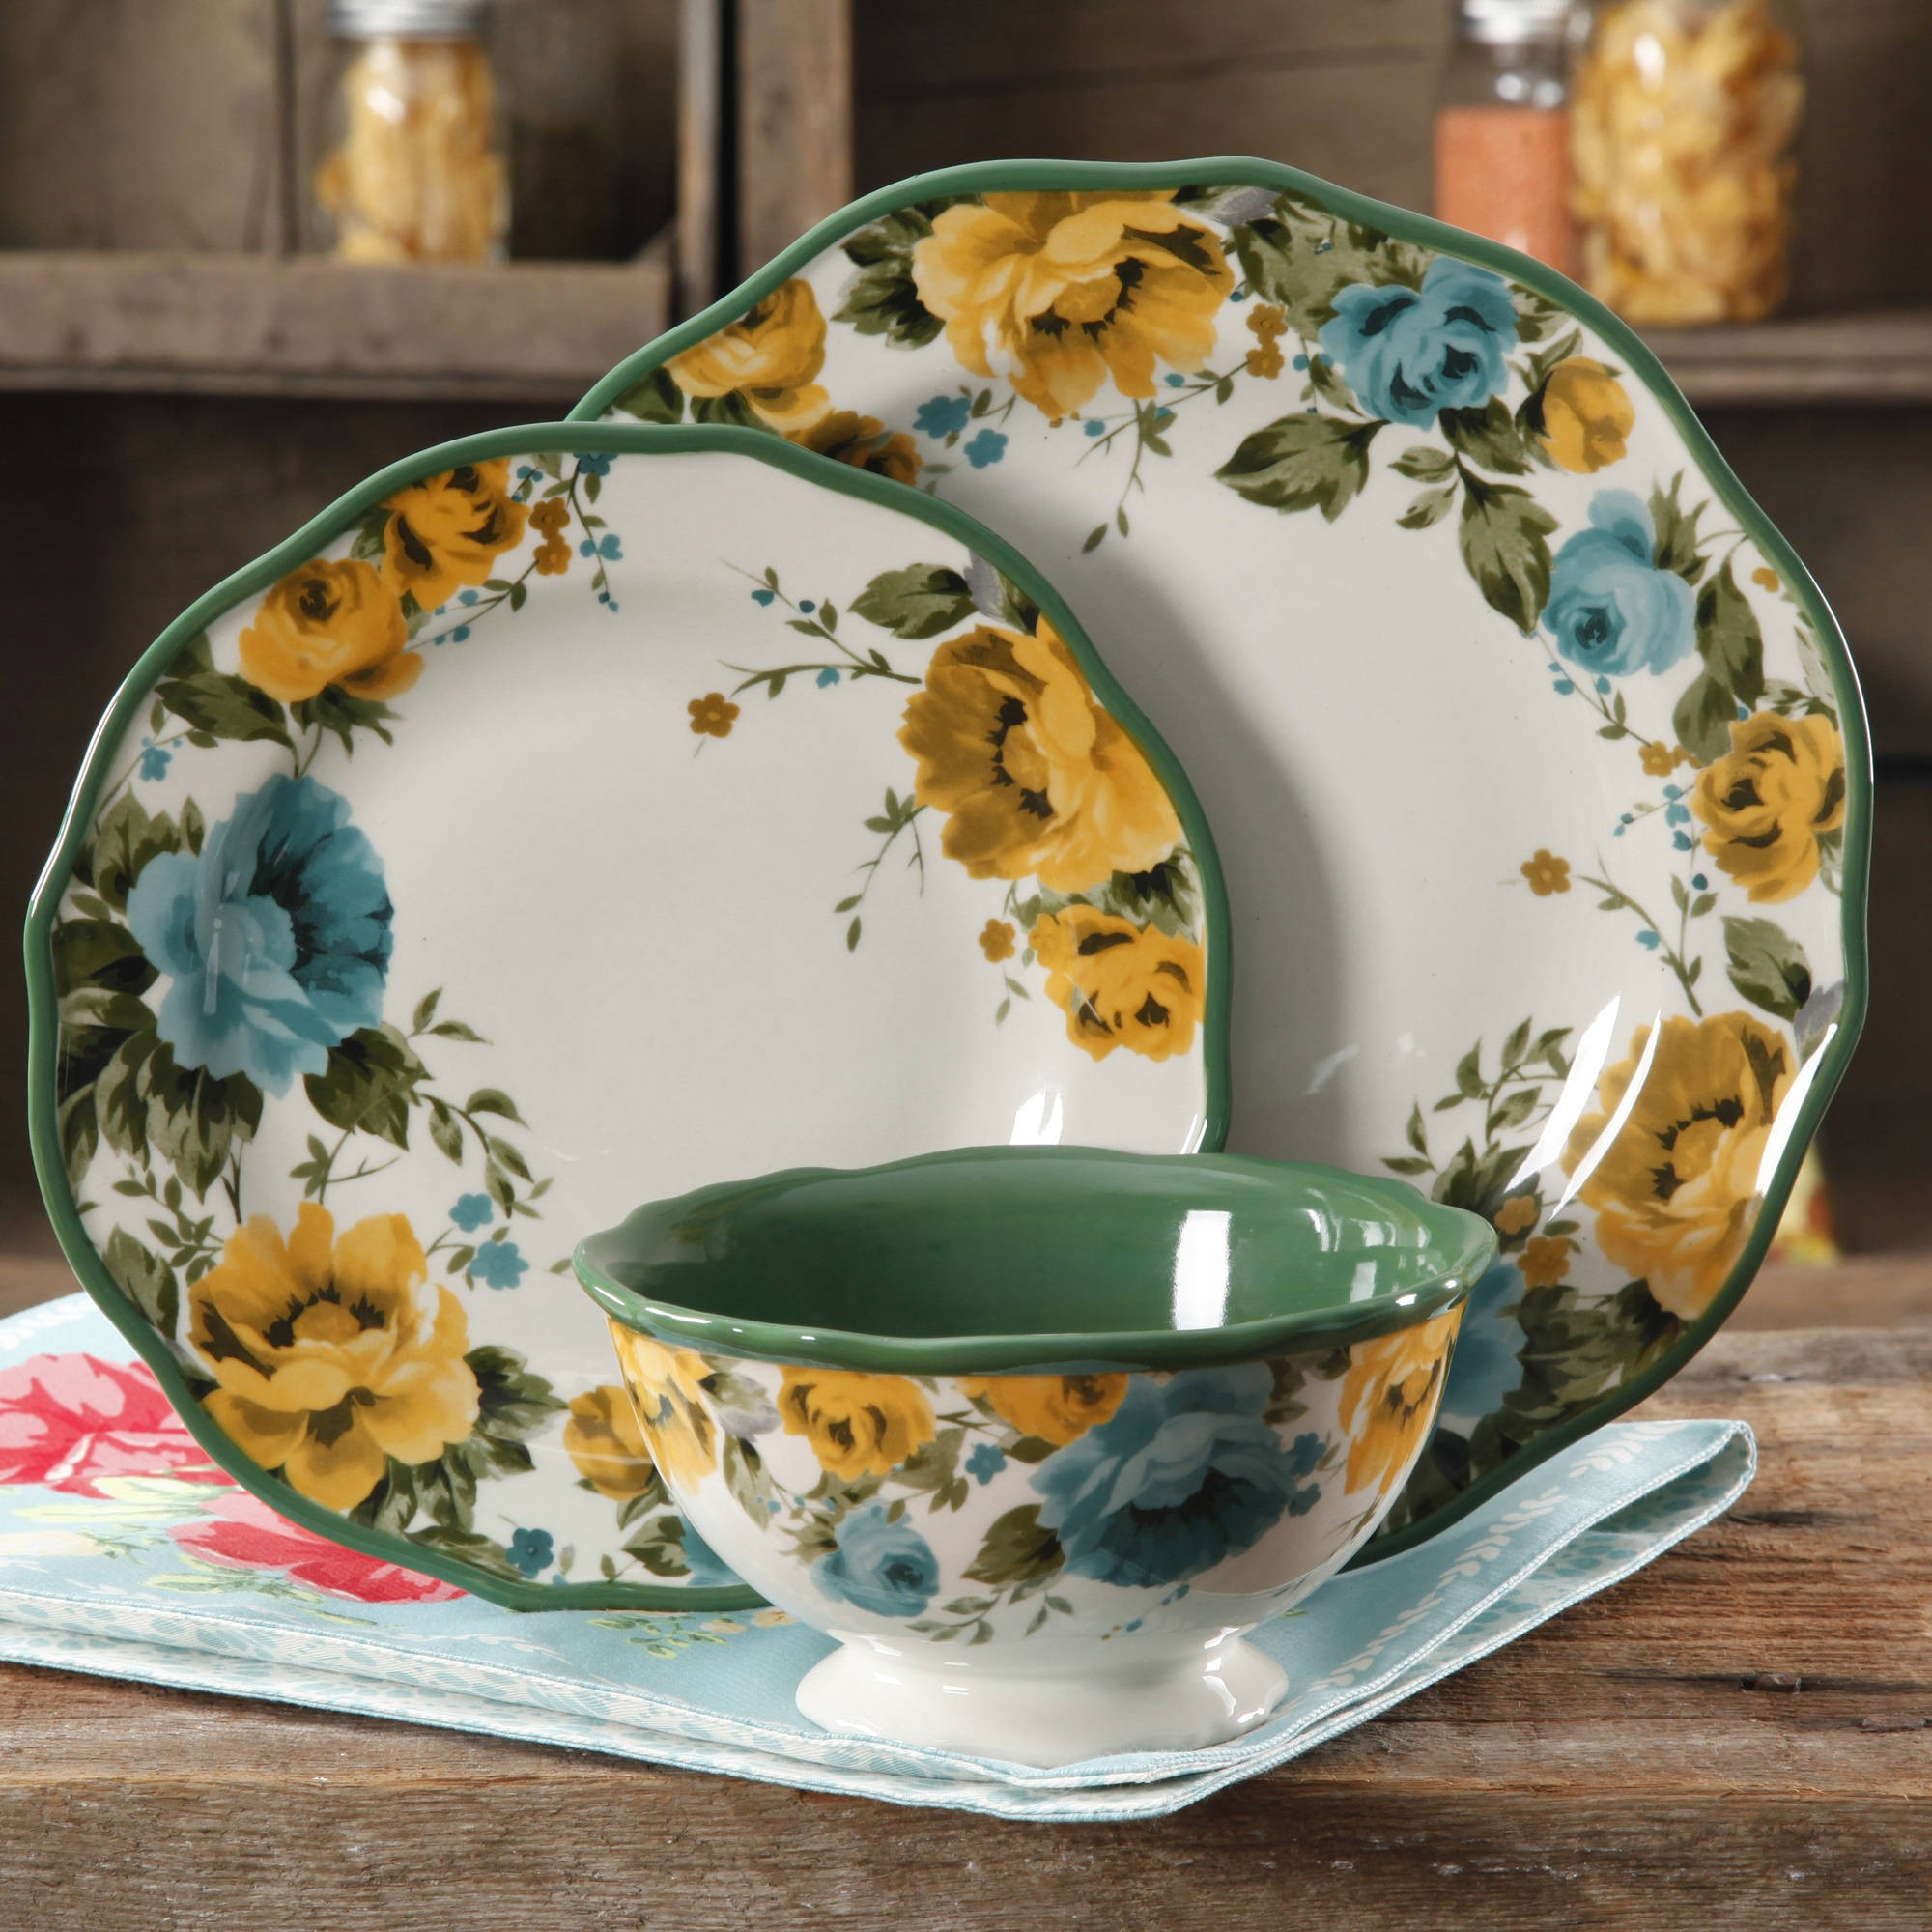 The Pioneer Woman Rose Shadow 12-Piece Dinnerware Set & The Pioneer Woman Rose Shadow 12-Piece Dinnerware Set - Walmart.com